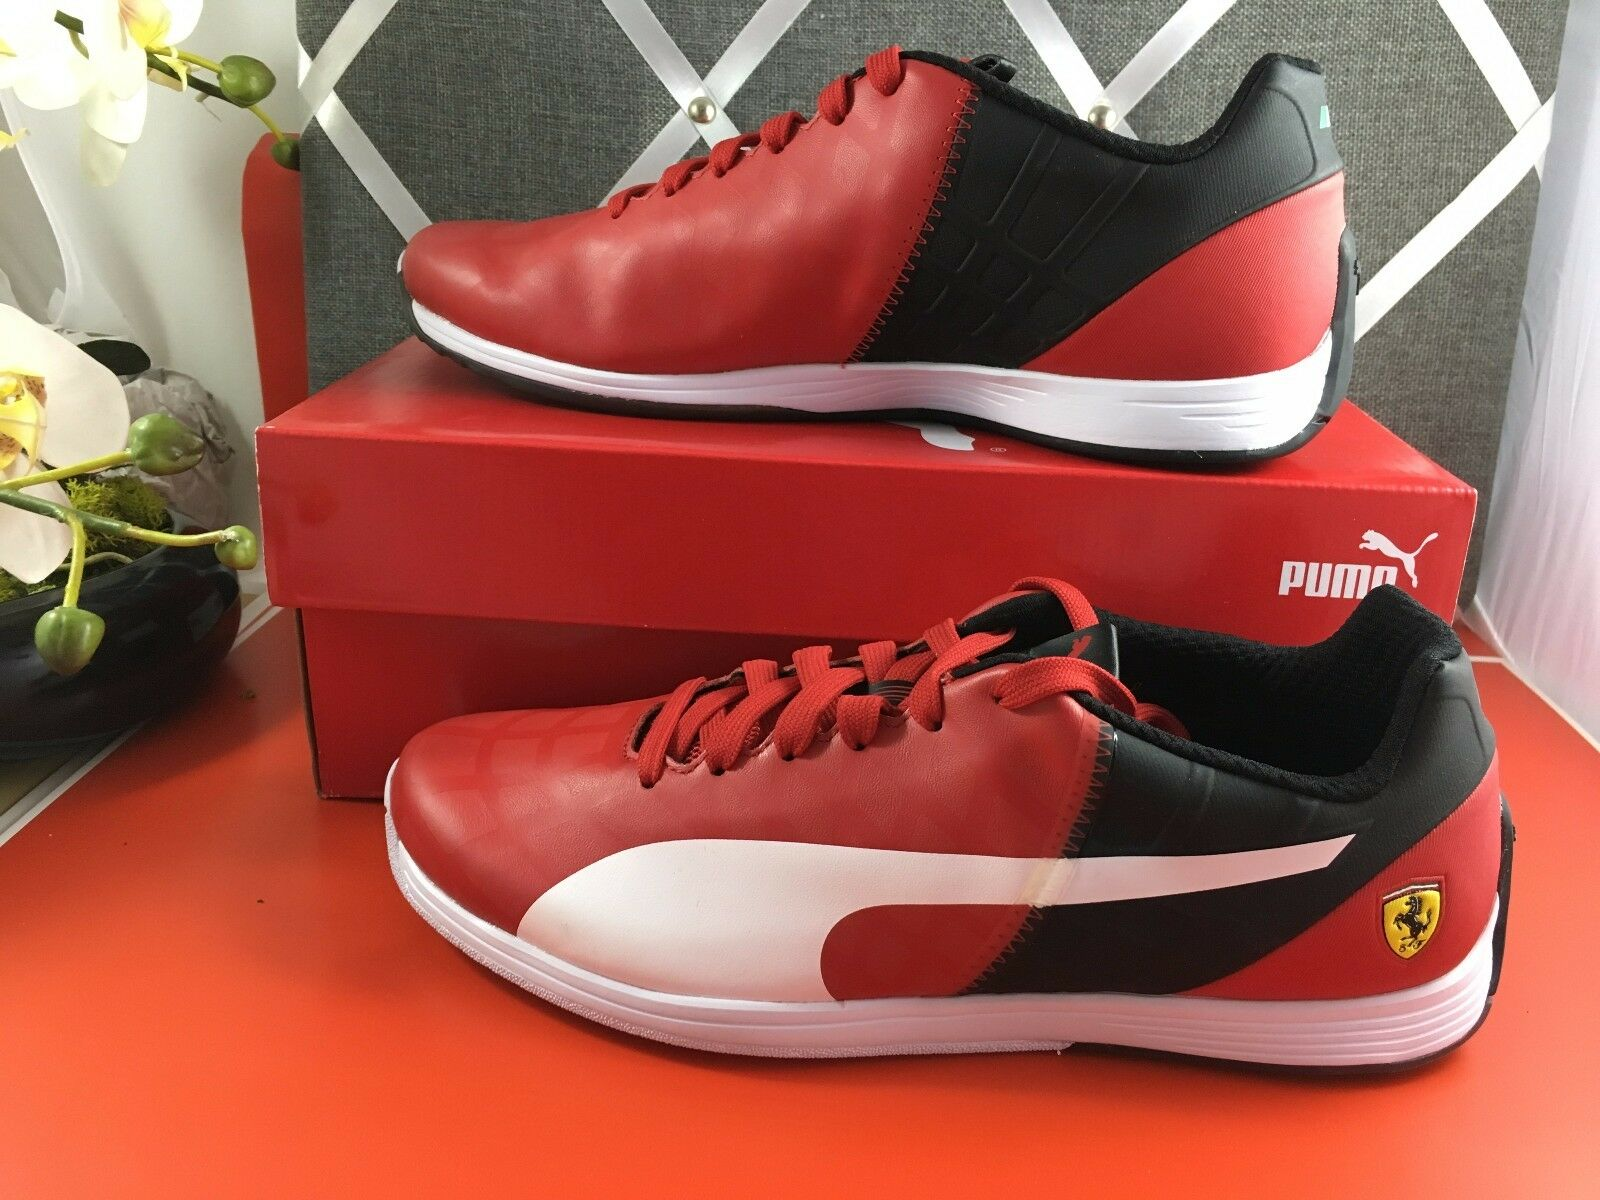 NEW in BOX PUMA evoSPEED 1.4 SF Men's shoes sneakers  RED 305555 02